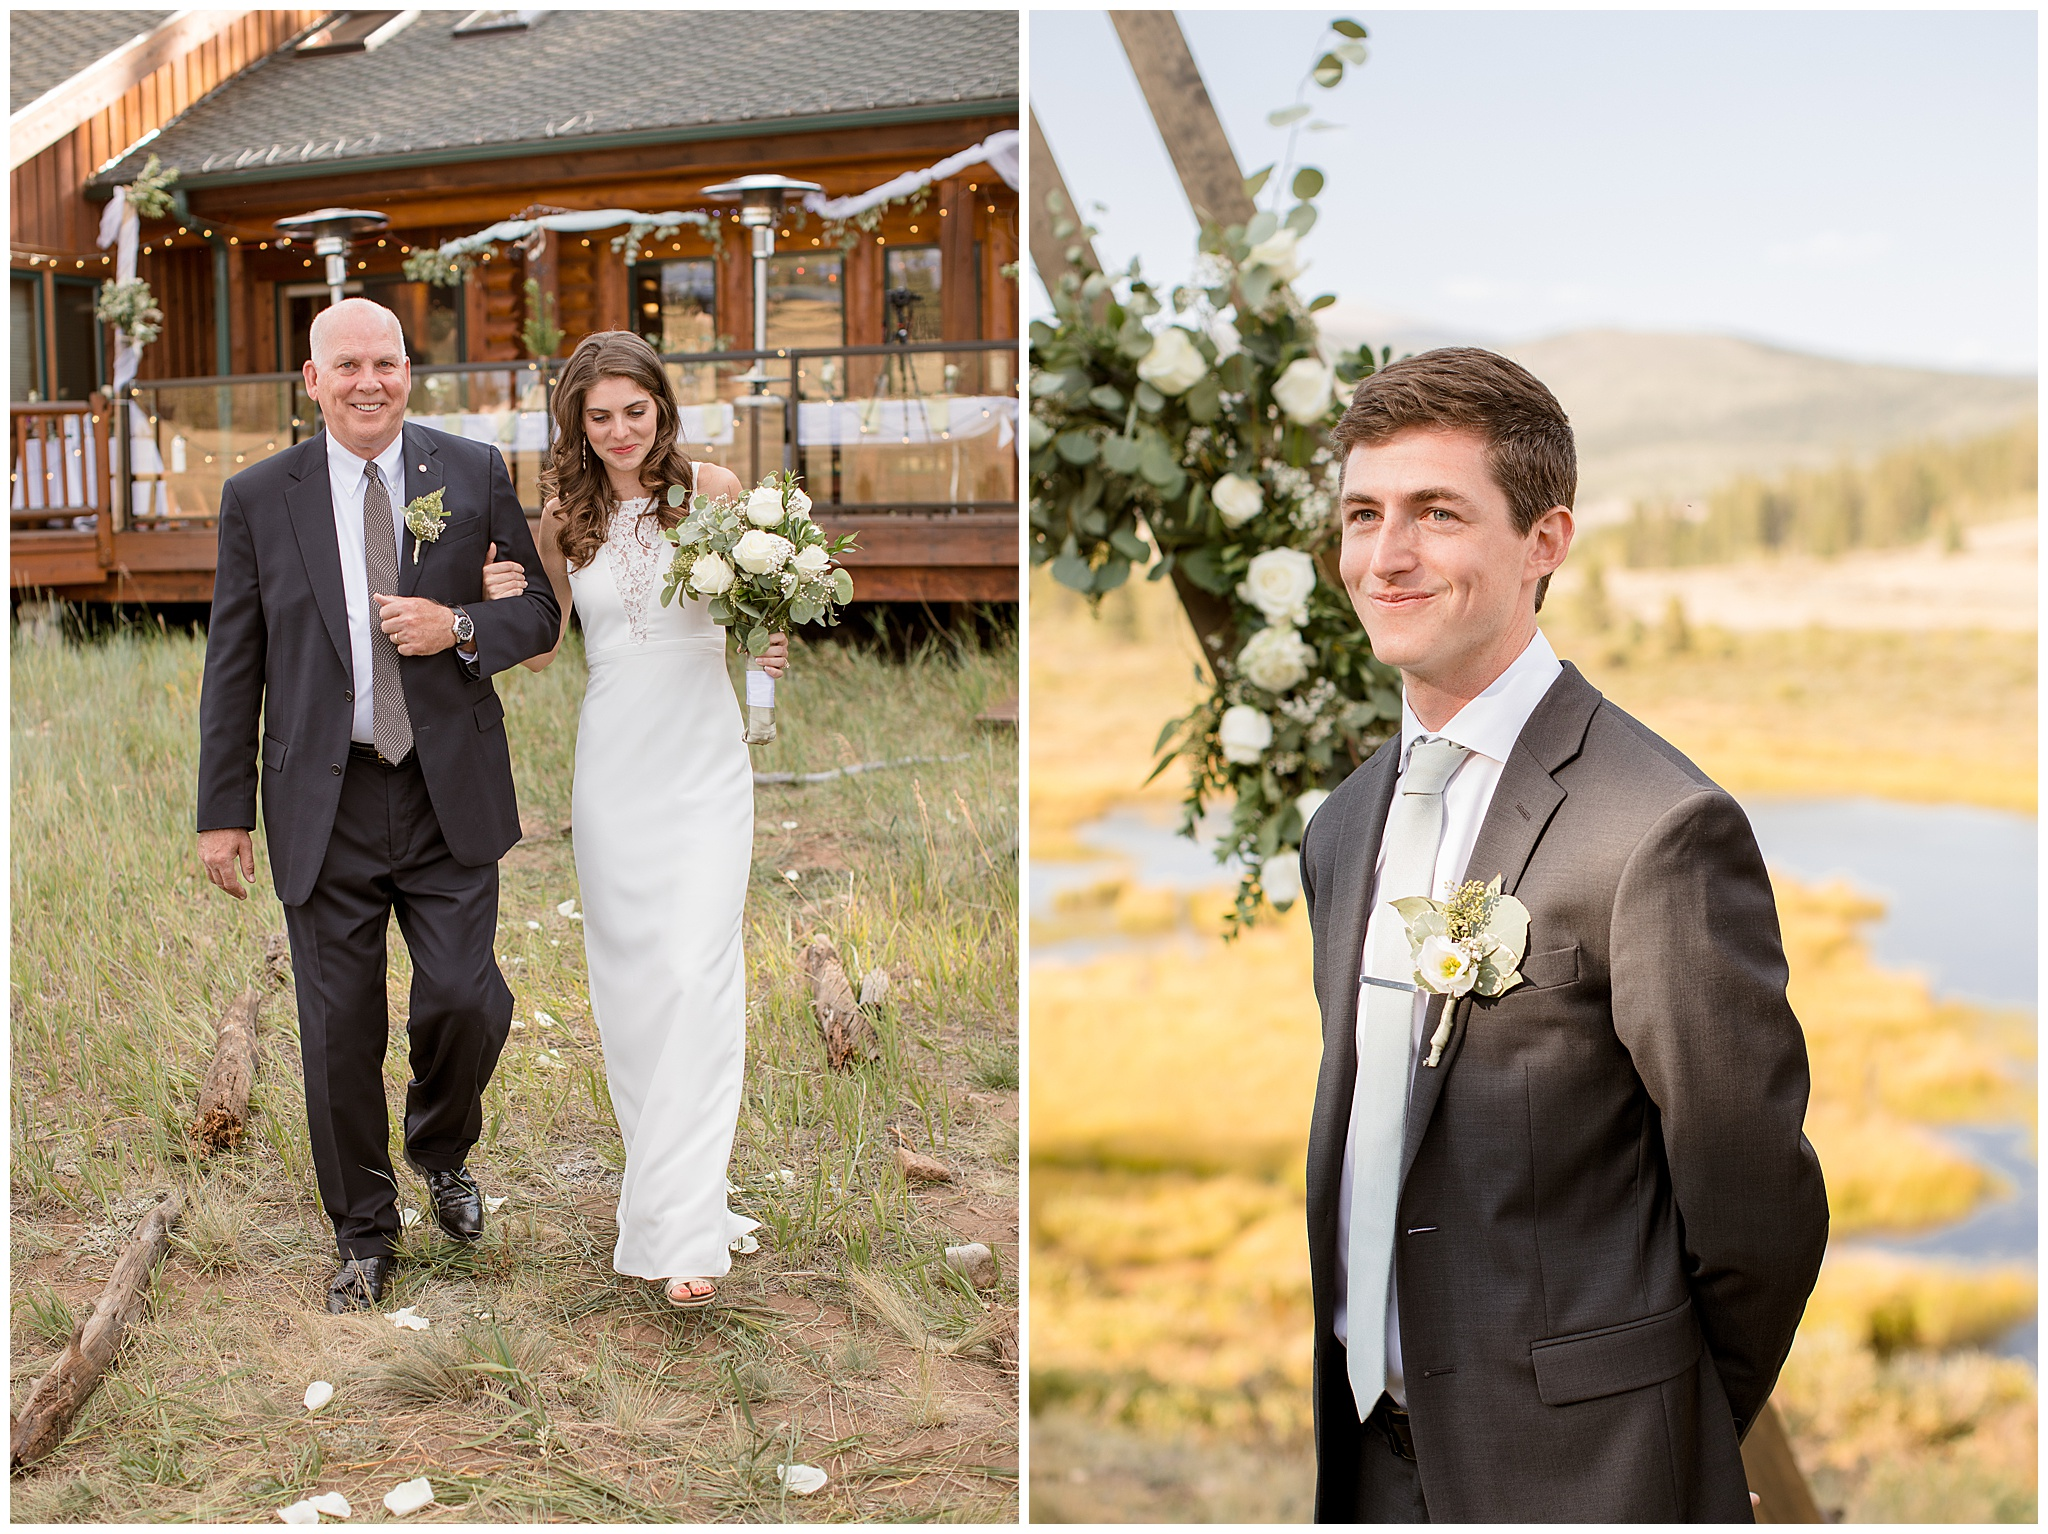 Father walking daughter down the aisle to her groom at their small micro colorado wedding